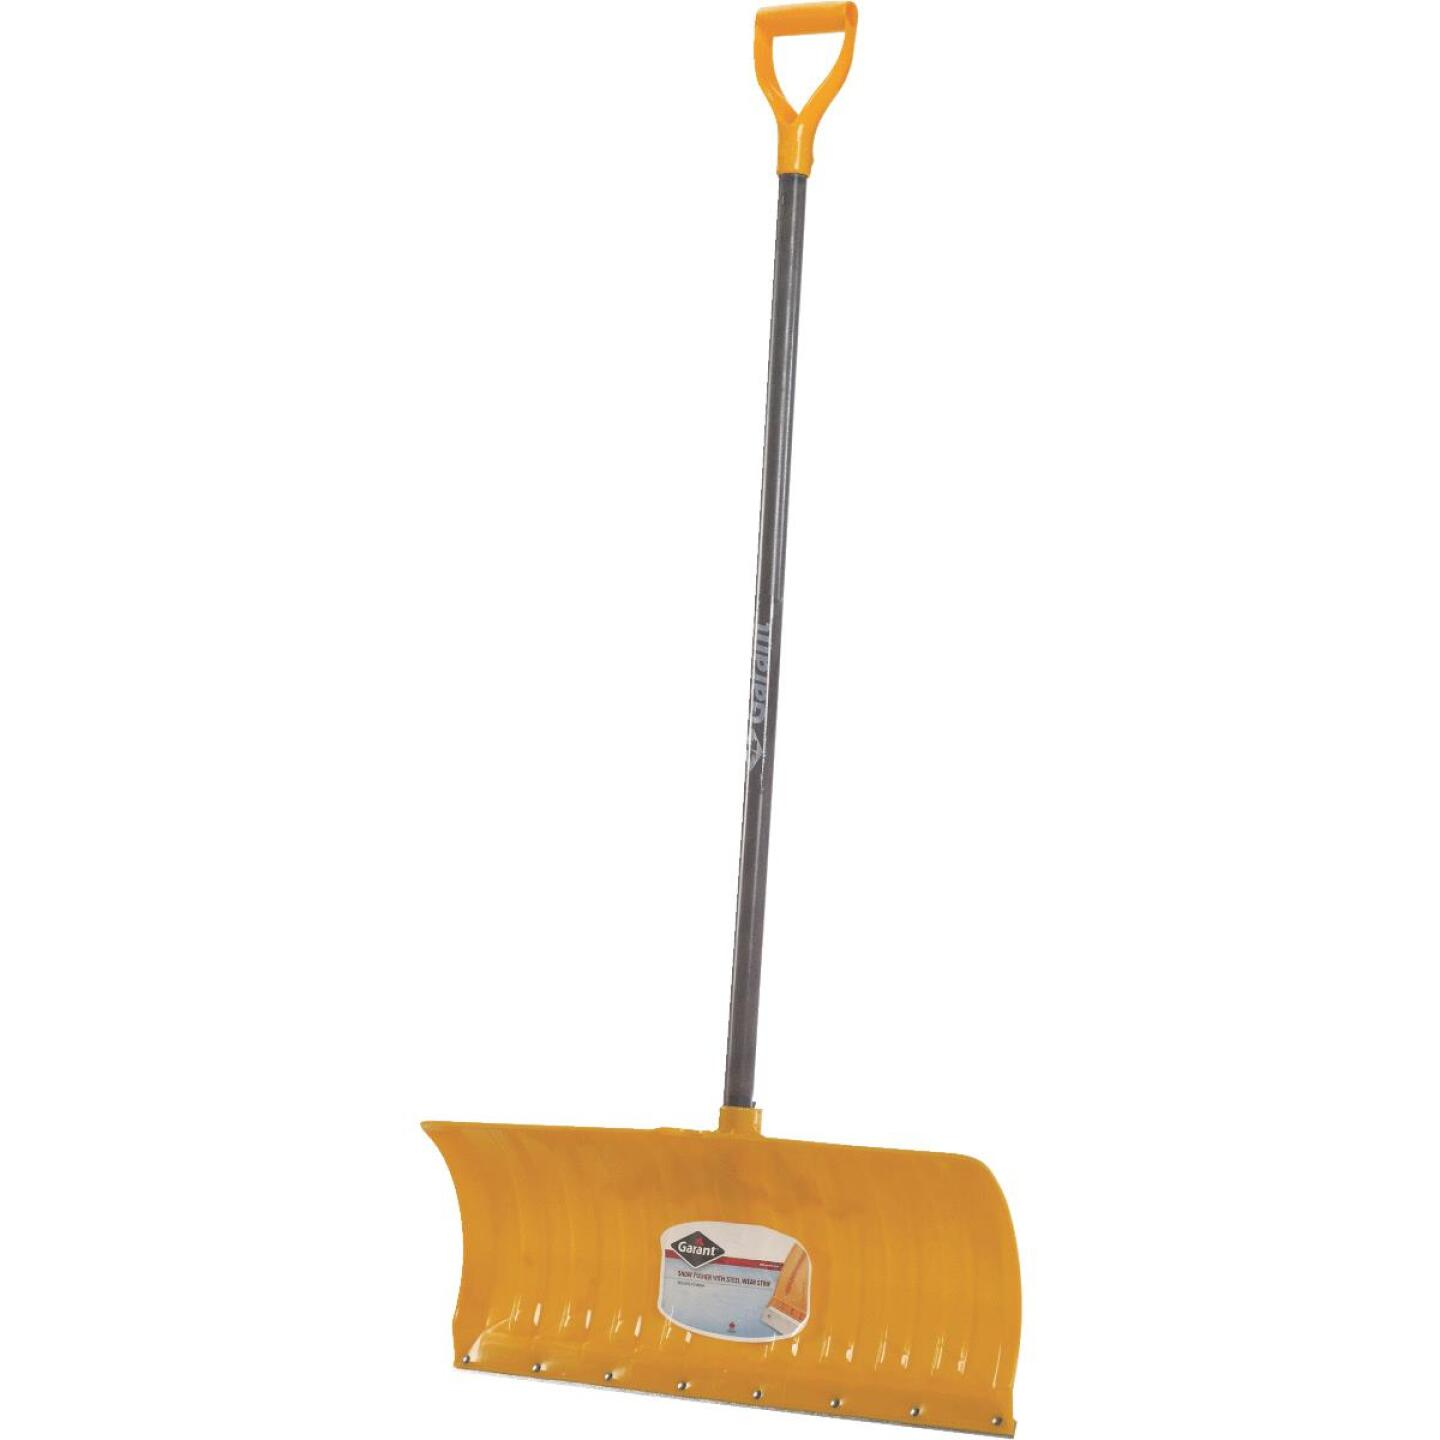 Garant Alpine 26 In. Poly Snow Pusher with 46.25 In. Wood Handle Image 1